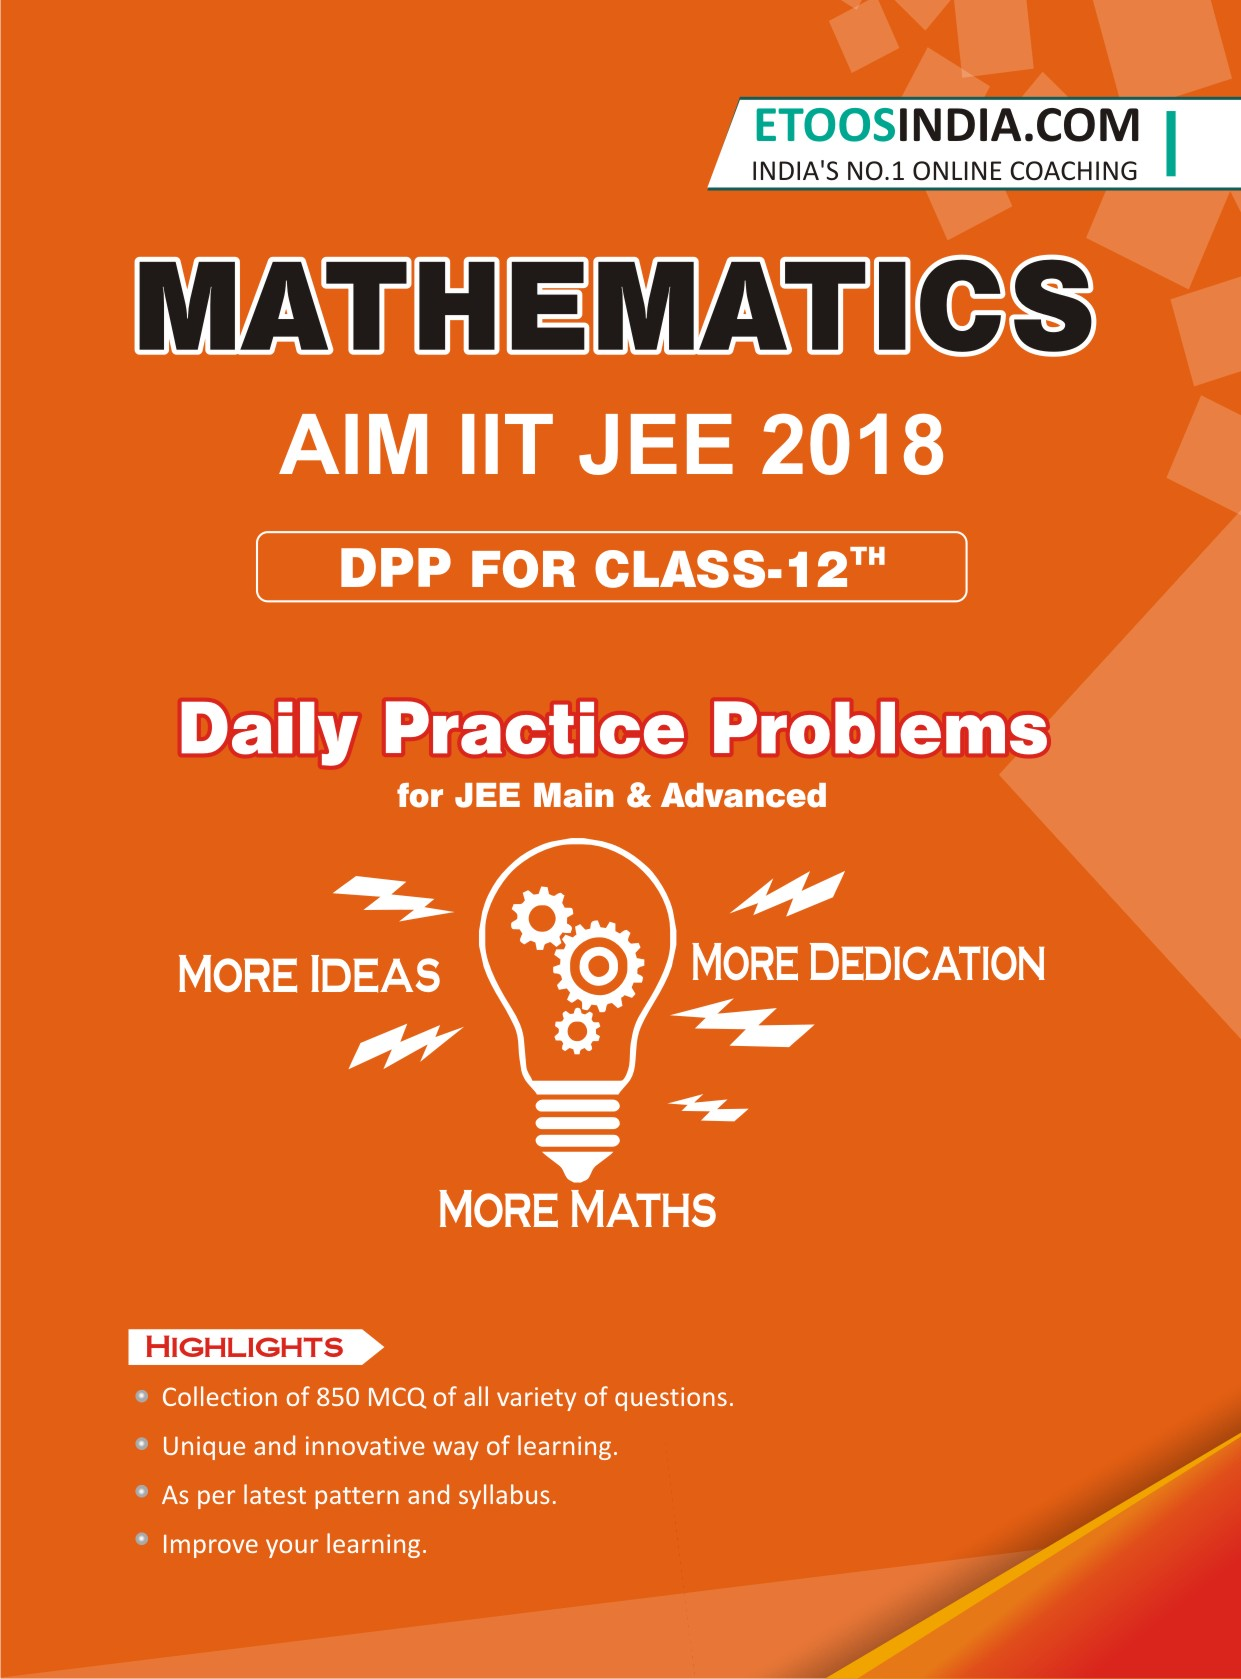 Class 11, 12 Complete Mathematics Books for JEE Main